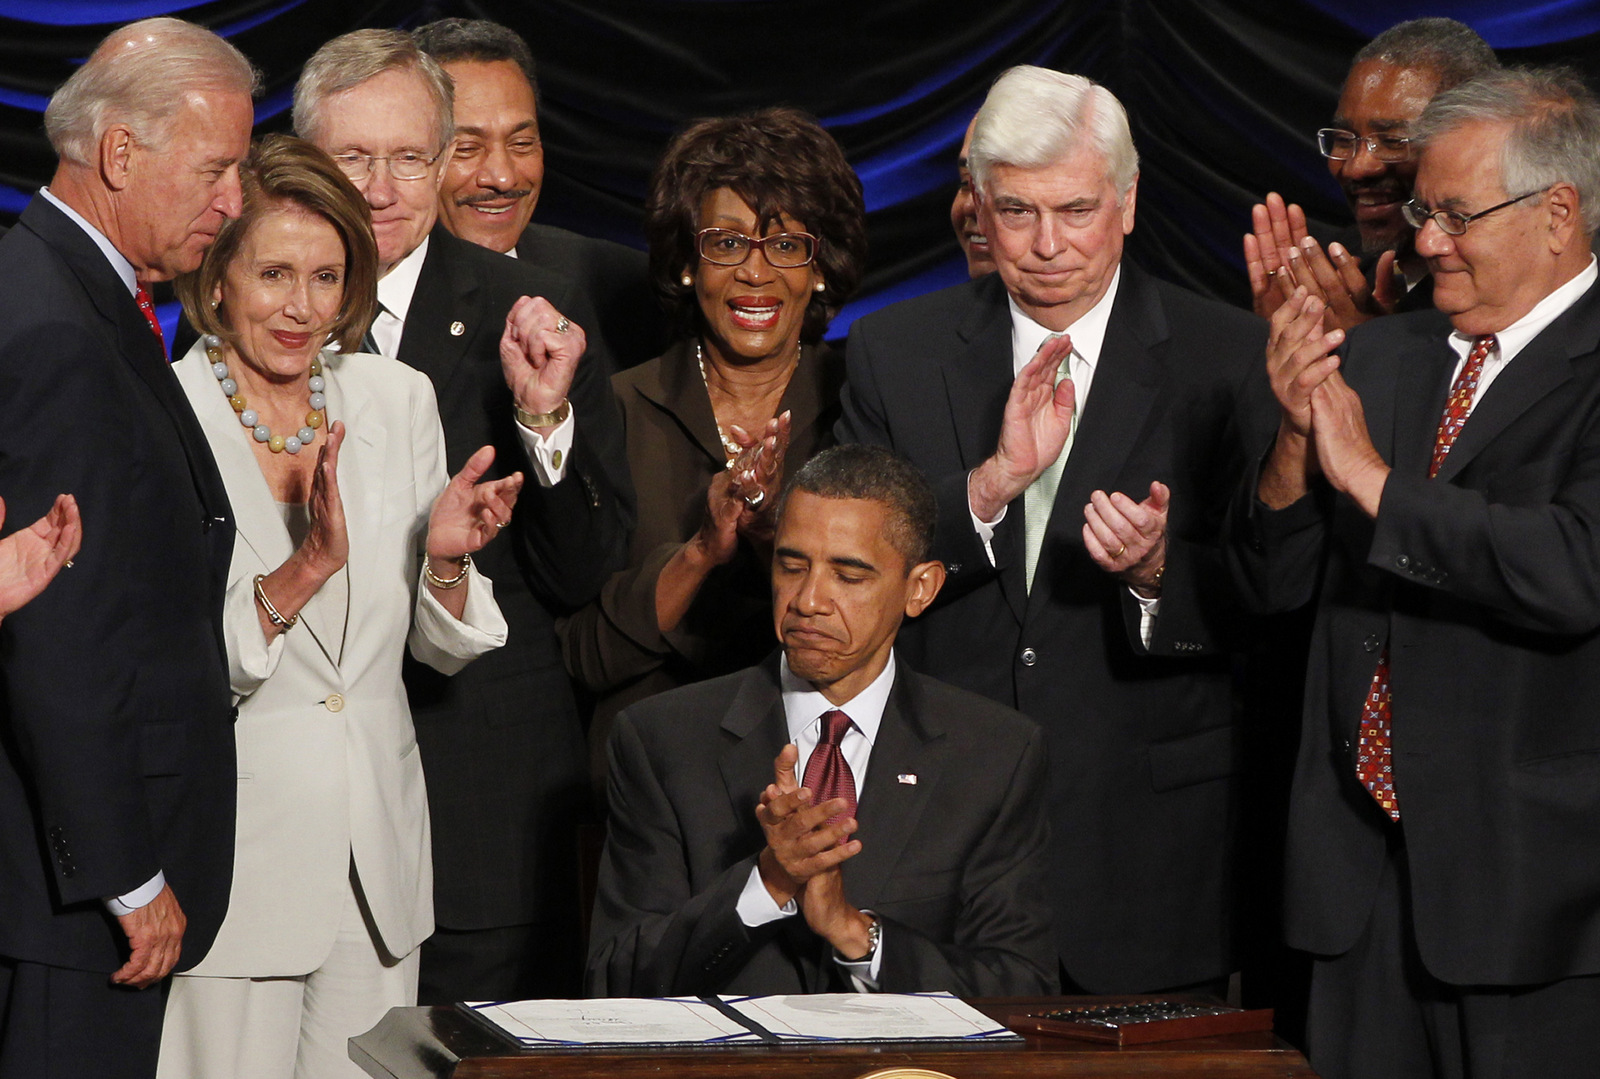 Barack Obama signs the Dodd-Frank Wall Street Reform and Consumer Protection financial overhaul bill at the Ronald Reagan Building in Washington, Wednesday, July 21, 2010. (AP/Charles Dharapak)